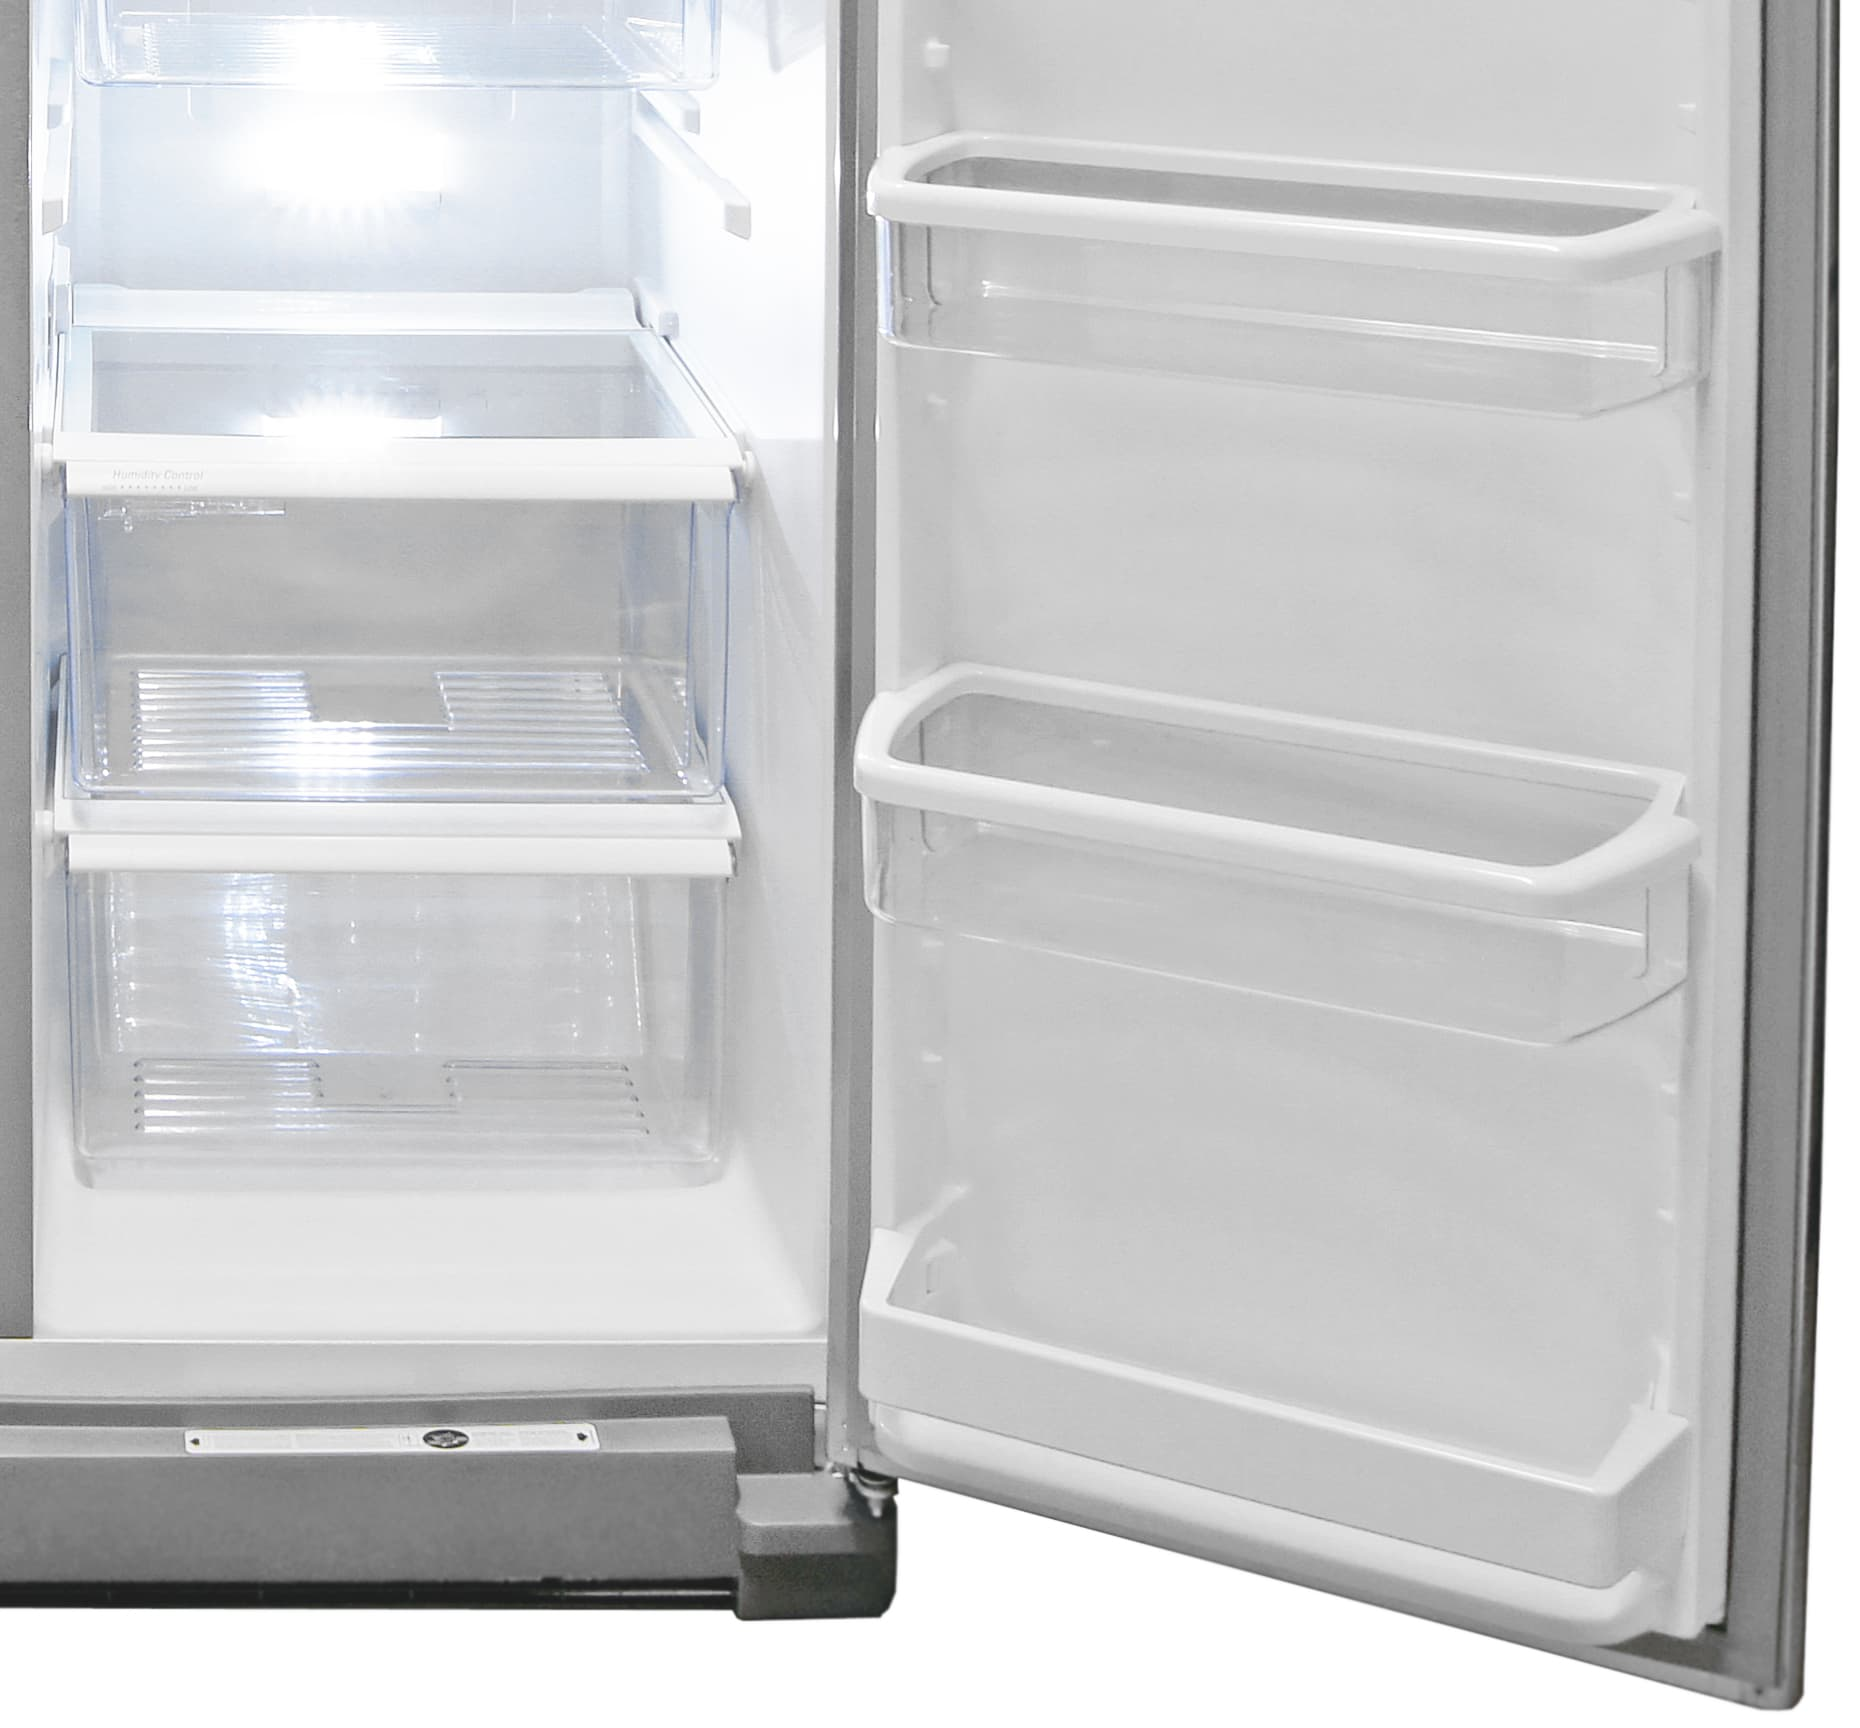 Whirlpool Wrs325fdam Refrigerator Review Reviewed Com